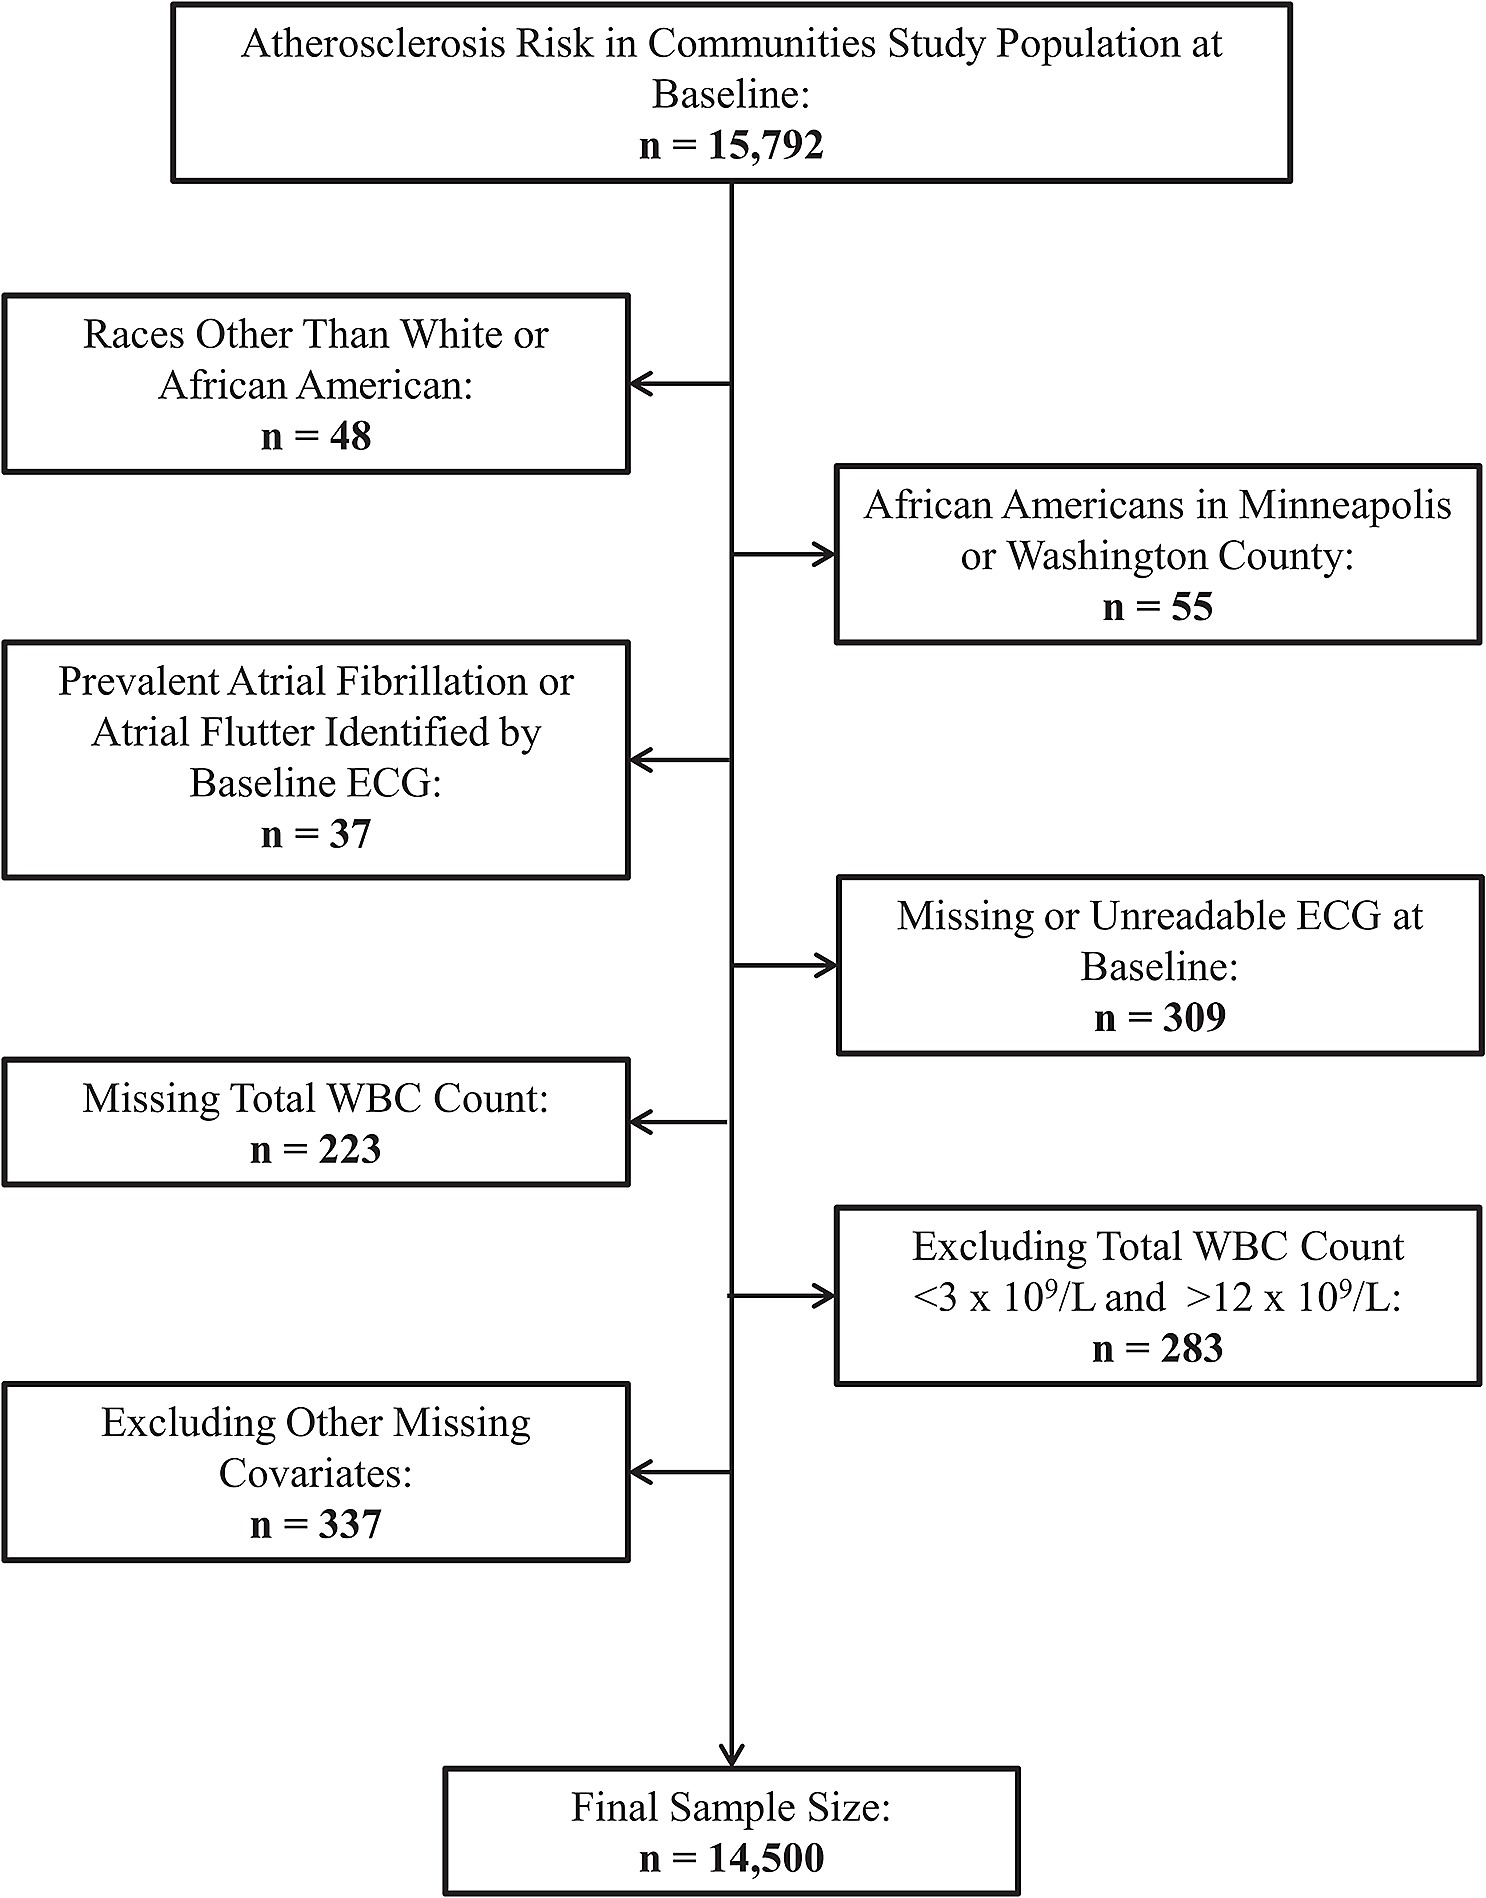 Flow chart of participants excluded at baseline, Atherosclerosis